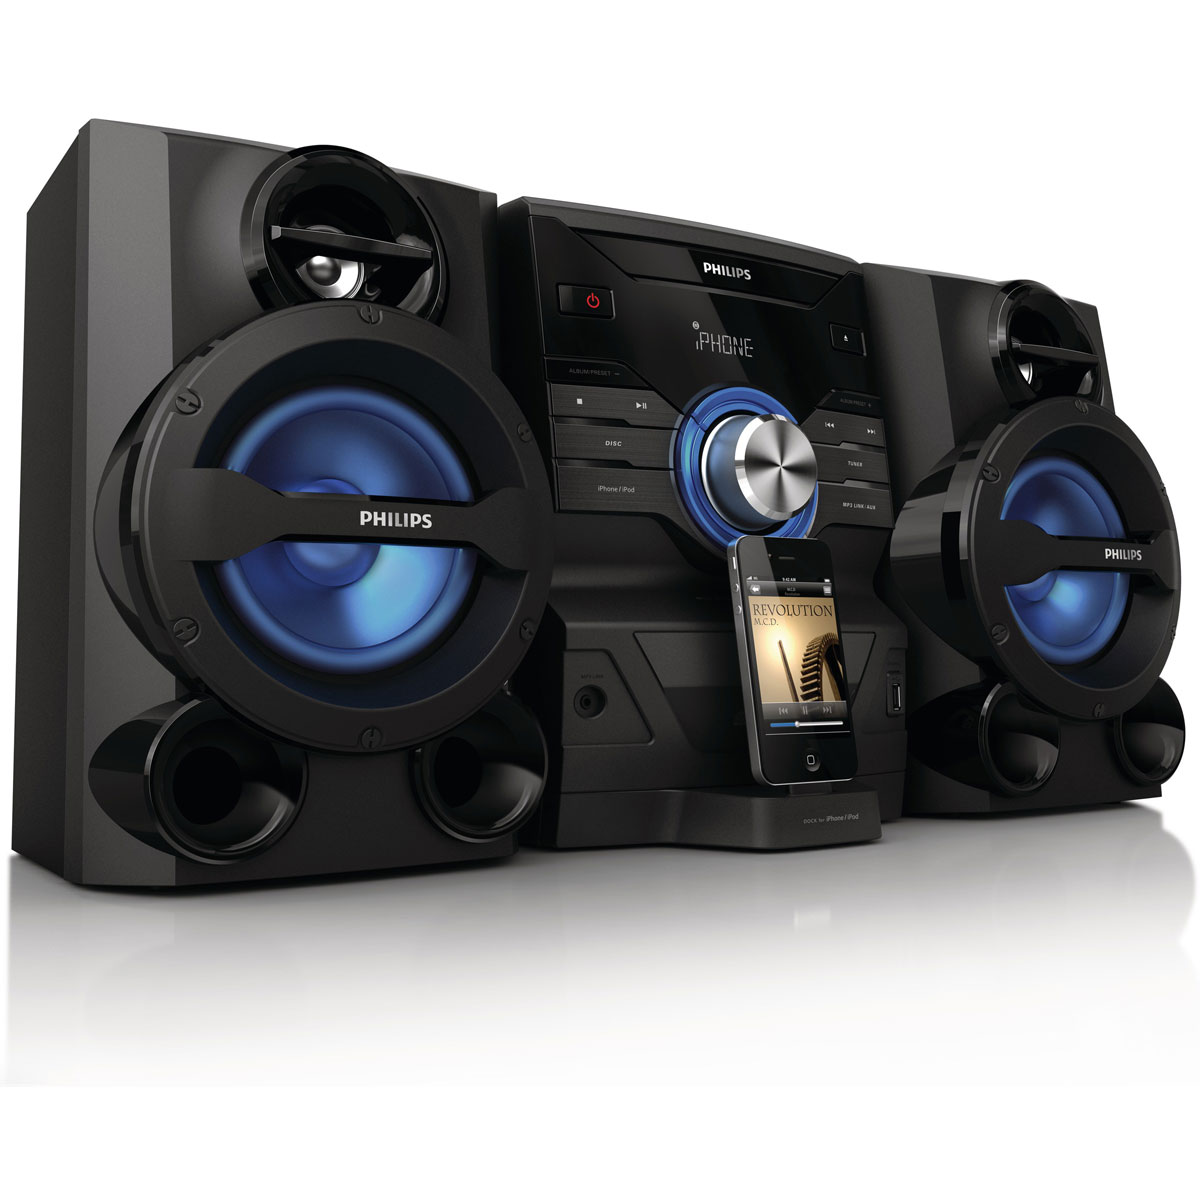 philips fwm200d 12 cha ne hifi philips sur ldlc. Black Bedroom Furniture Sets. Home Design Ideas